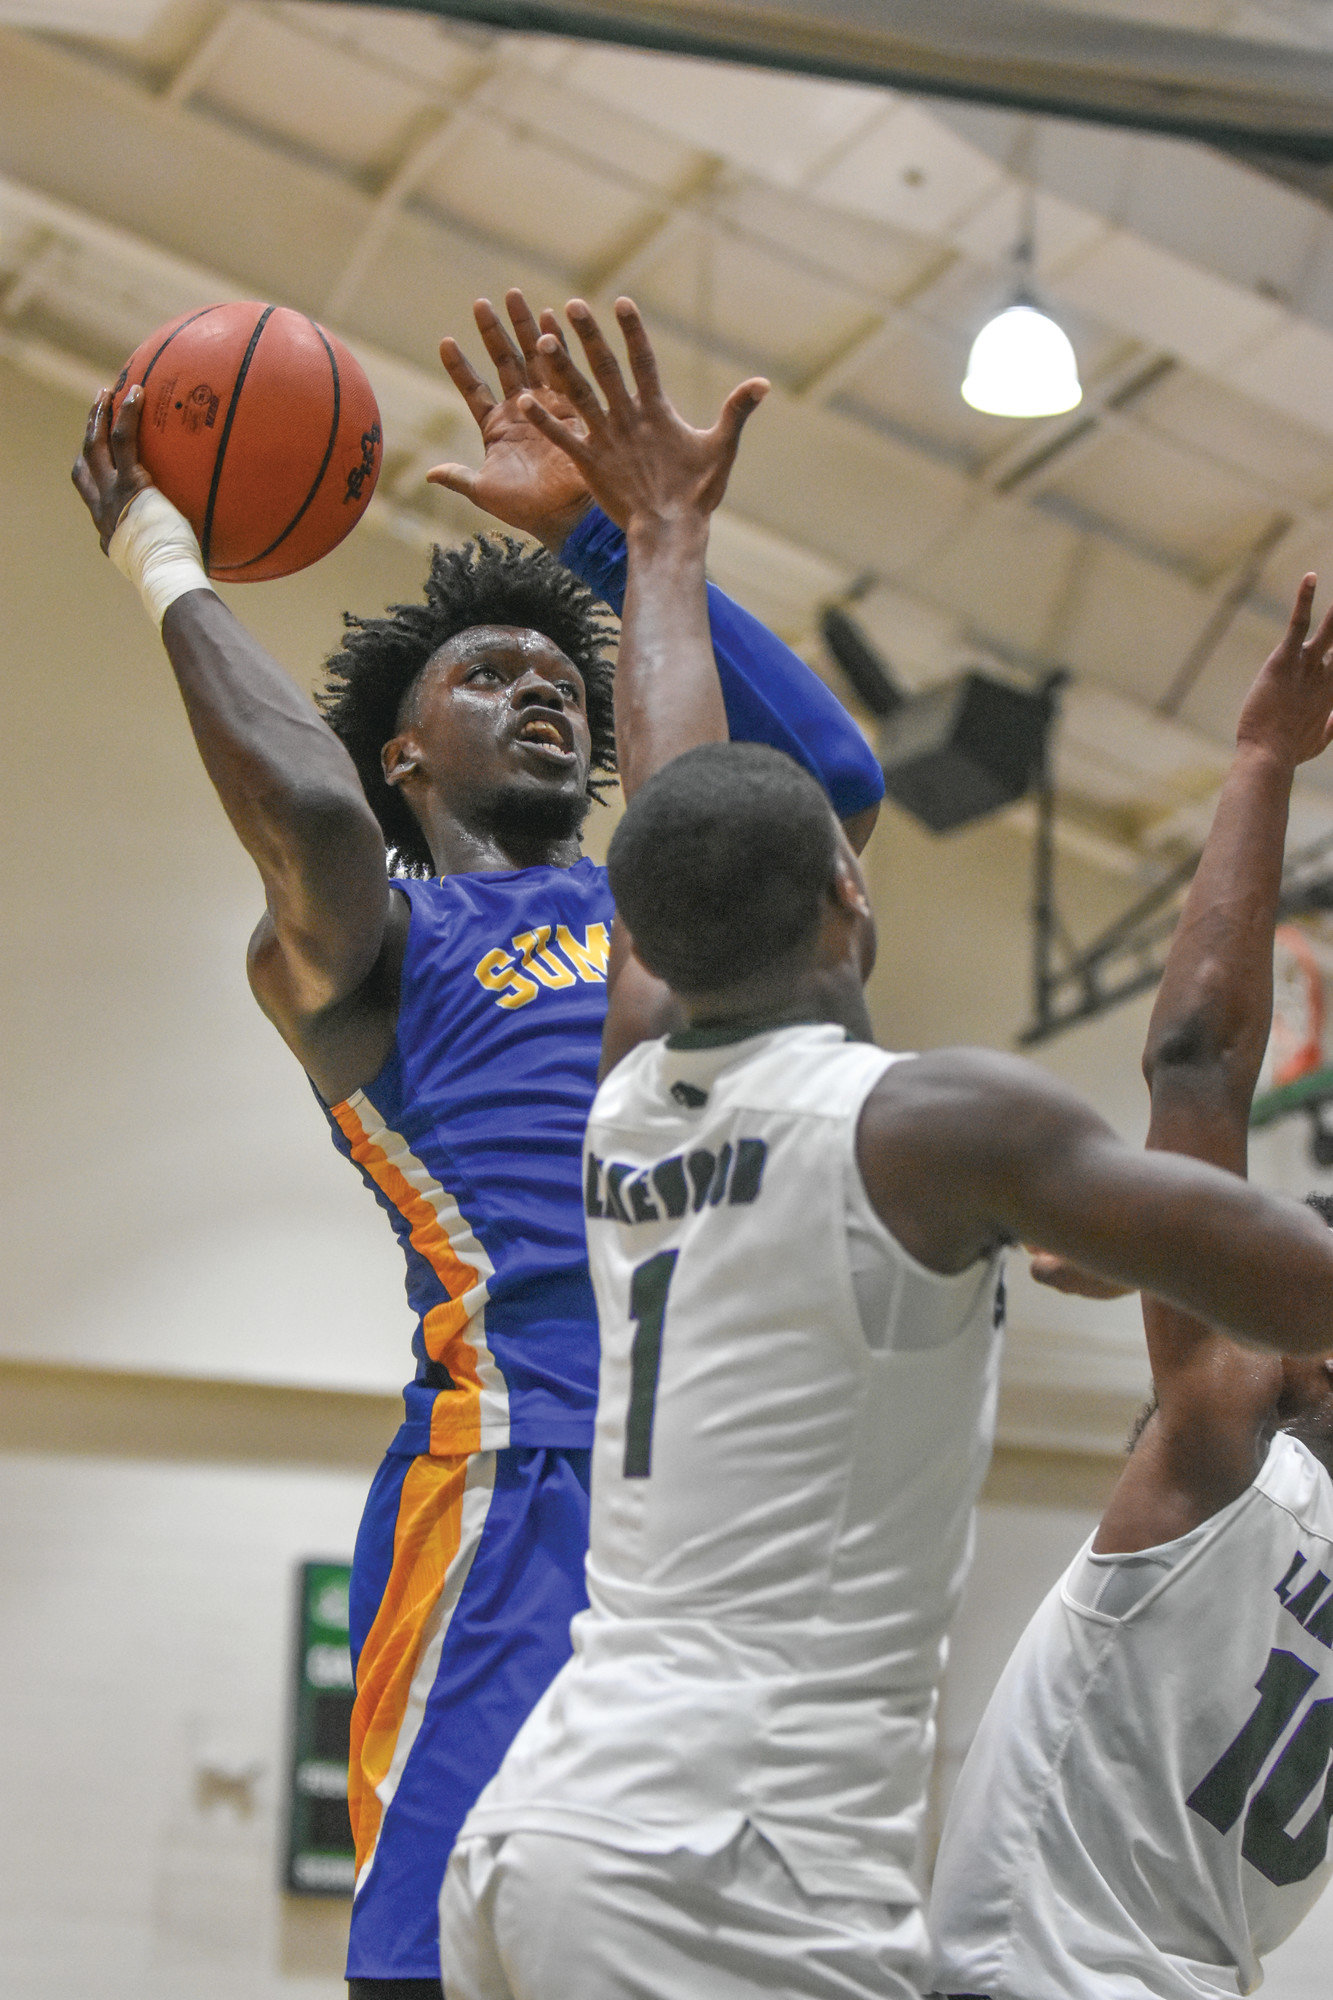 Trevor Bauknight / The Sumter ItemSumter High School's Calvin Felder, left, goes up for a shot in the Gamecocks' 69-61 loss to Lakewood on Friday. Sumter plays host to Hartsville and South Carolina commitment Trae Hannibal on Tuesday.